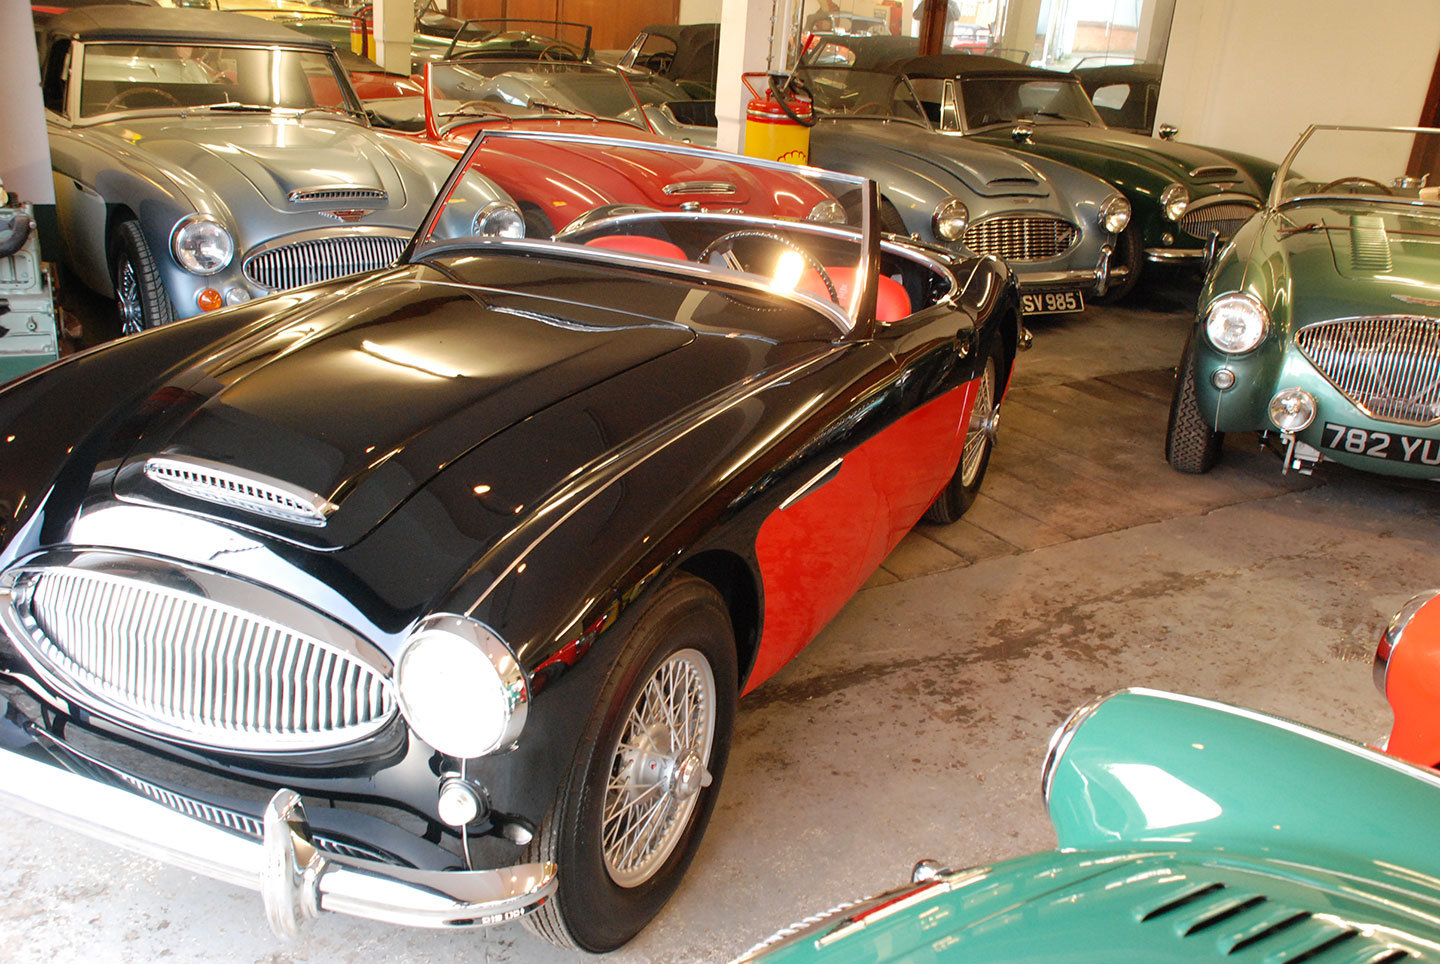 1961 Austin Healey 3000 Mk 2 BN7 2 seater tri carb For Sale (picture 4 of 10)